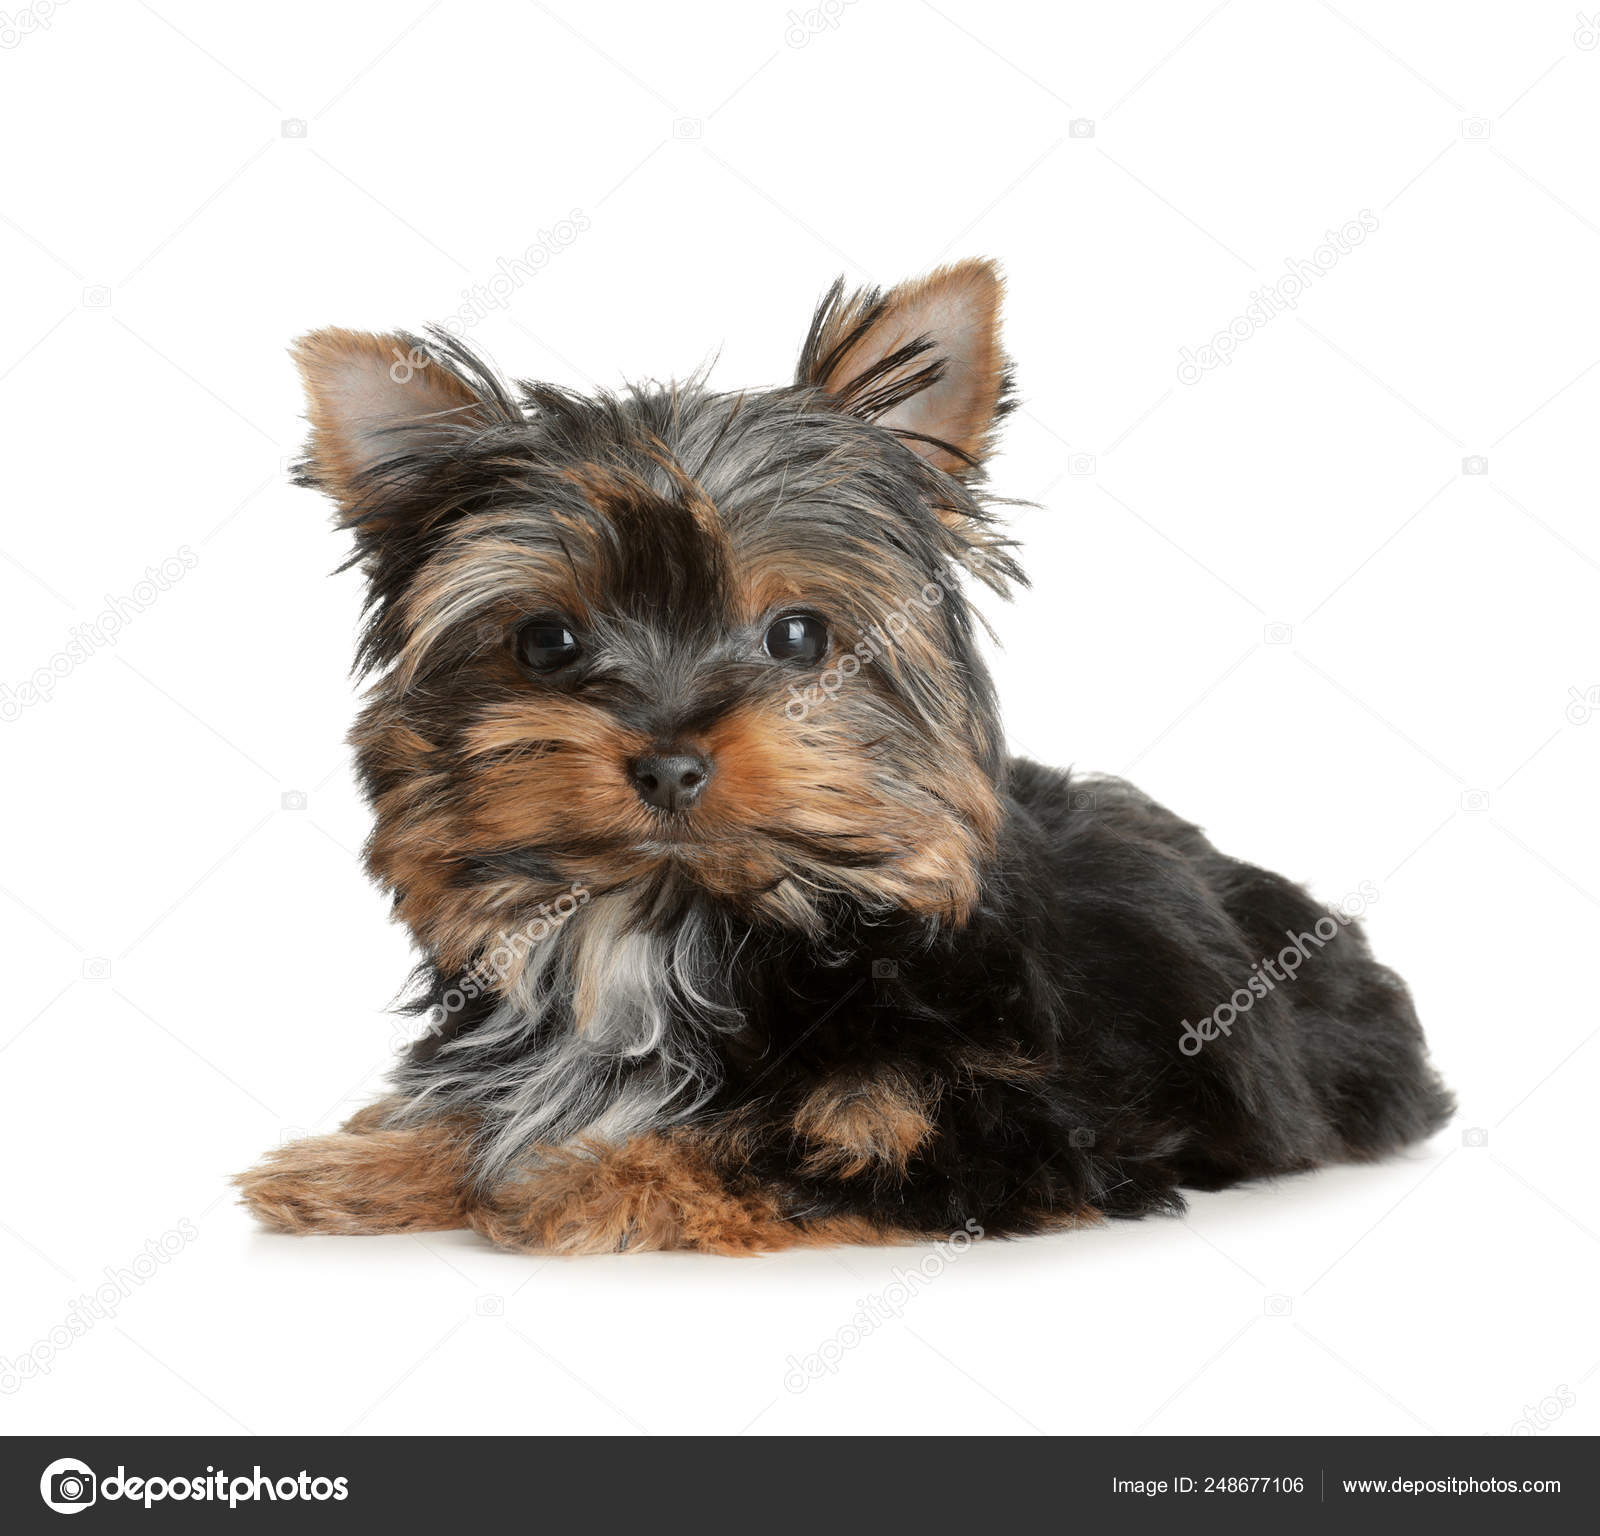 Cute Yorkshire Terrier Puppy On White Background Happy Dog Stock Photo C Liudmilachernetska Gmail Com 248677106